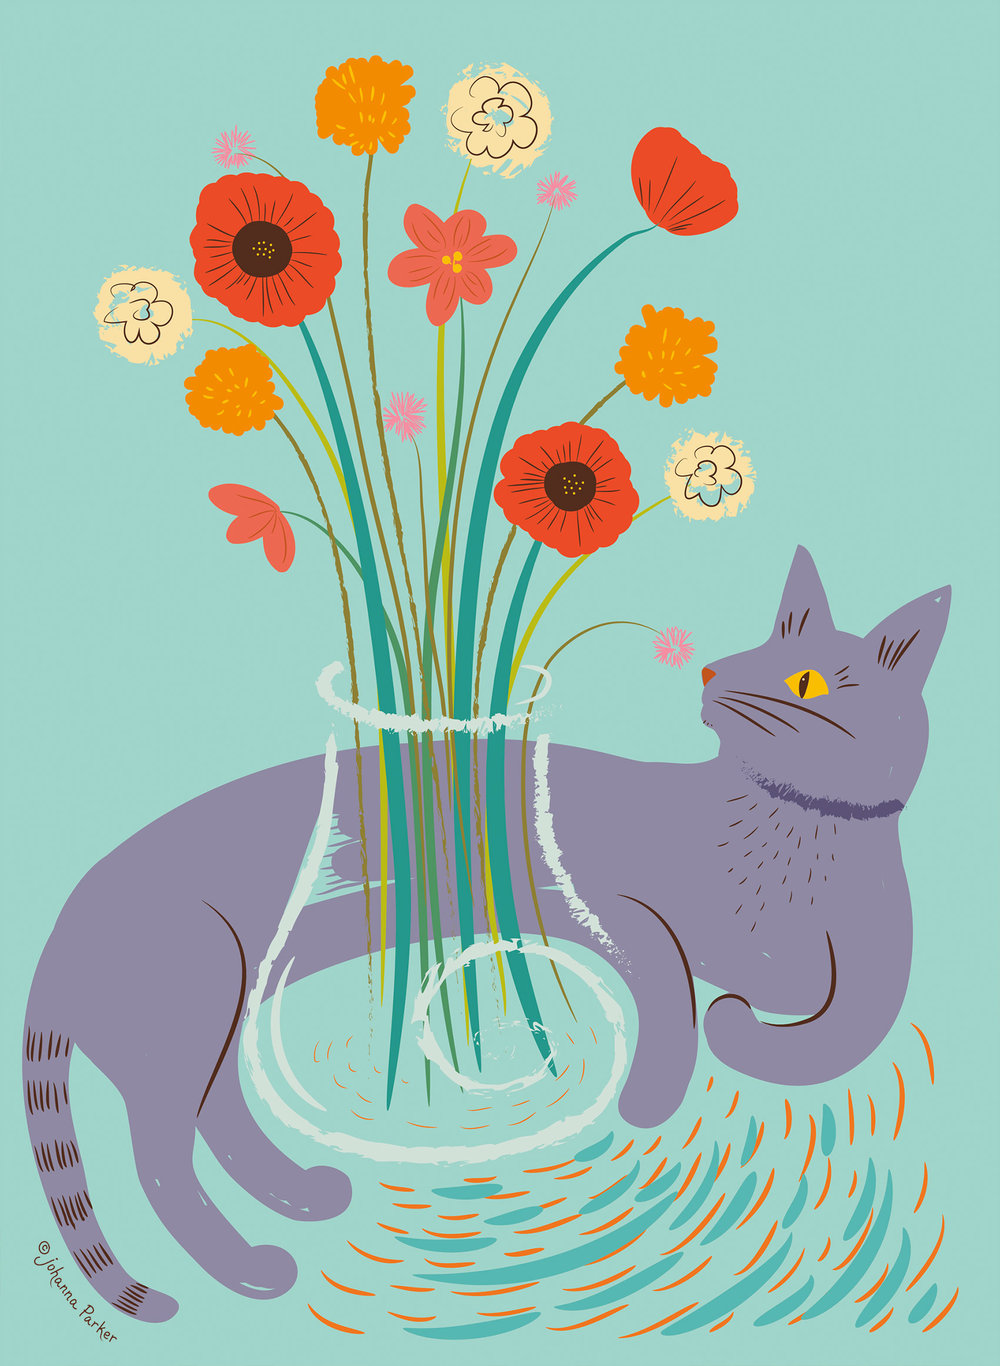 Mischievous purple cat & vase